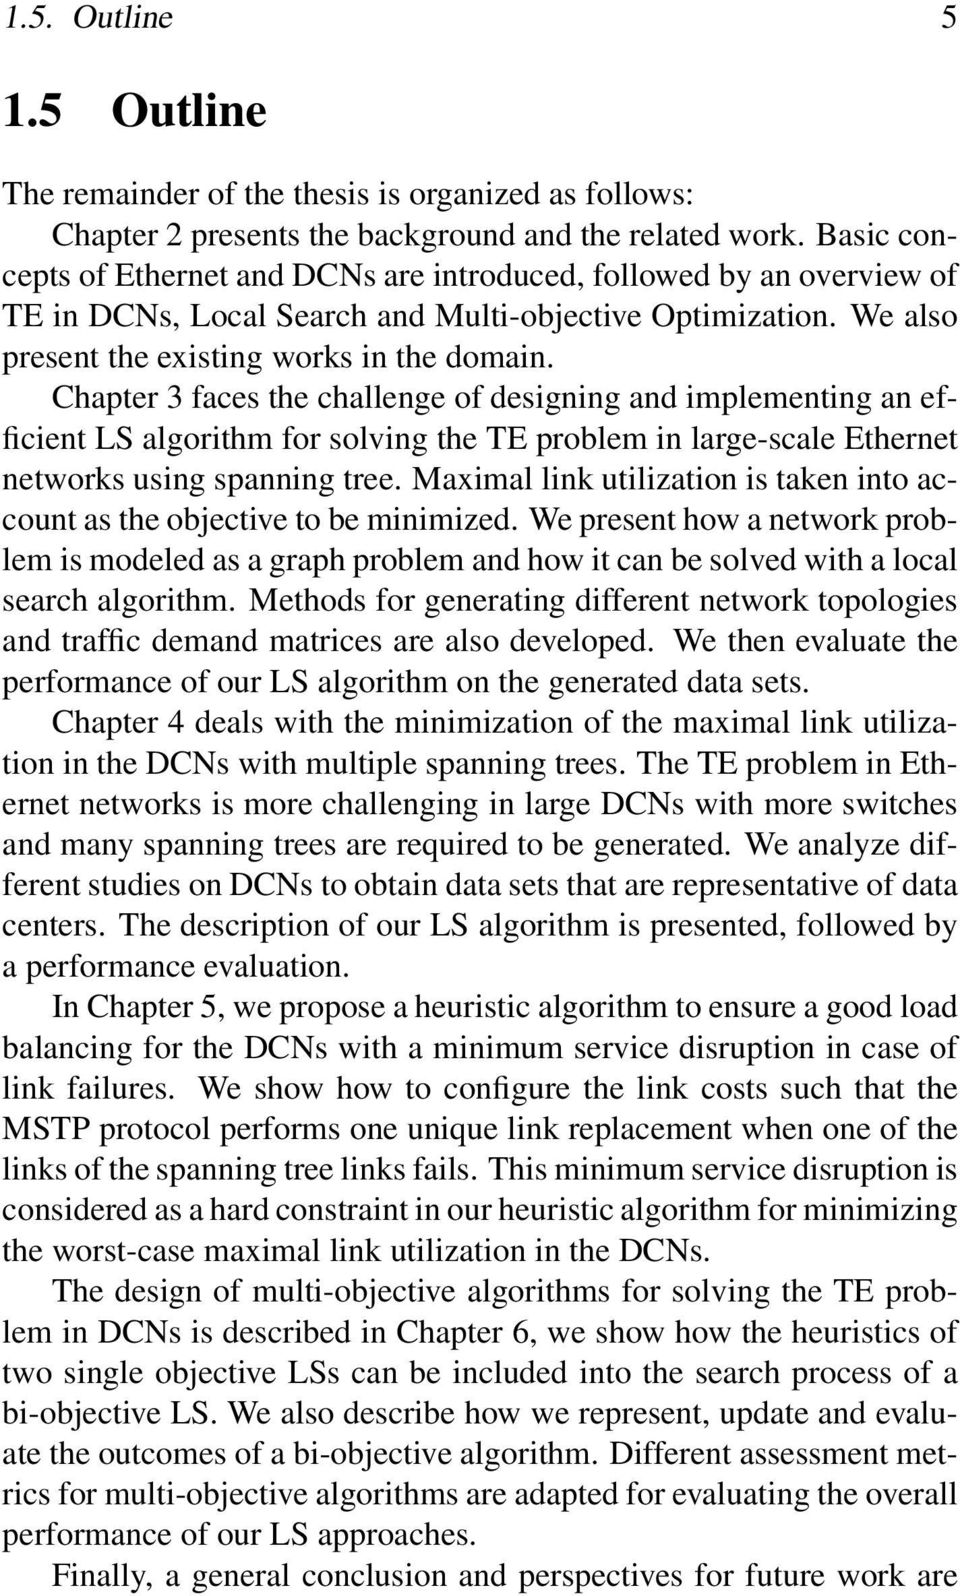 Chapter 3 faces the challenge of designing and implementing an efficient LS algorithm for solving the TE problem in large-scale Ethernet networks using spanning tree.